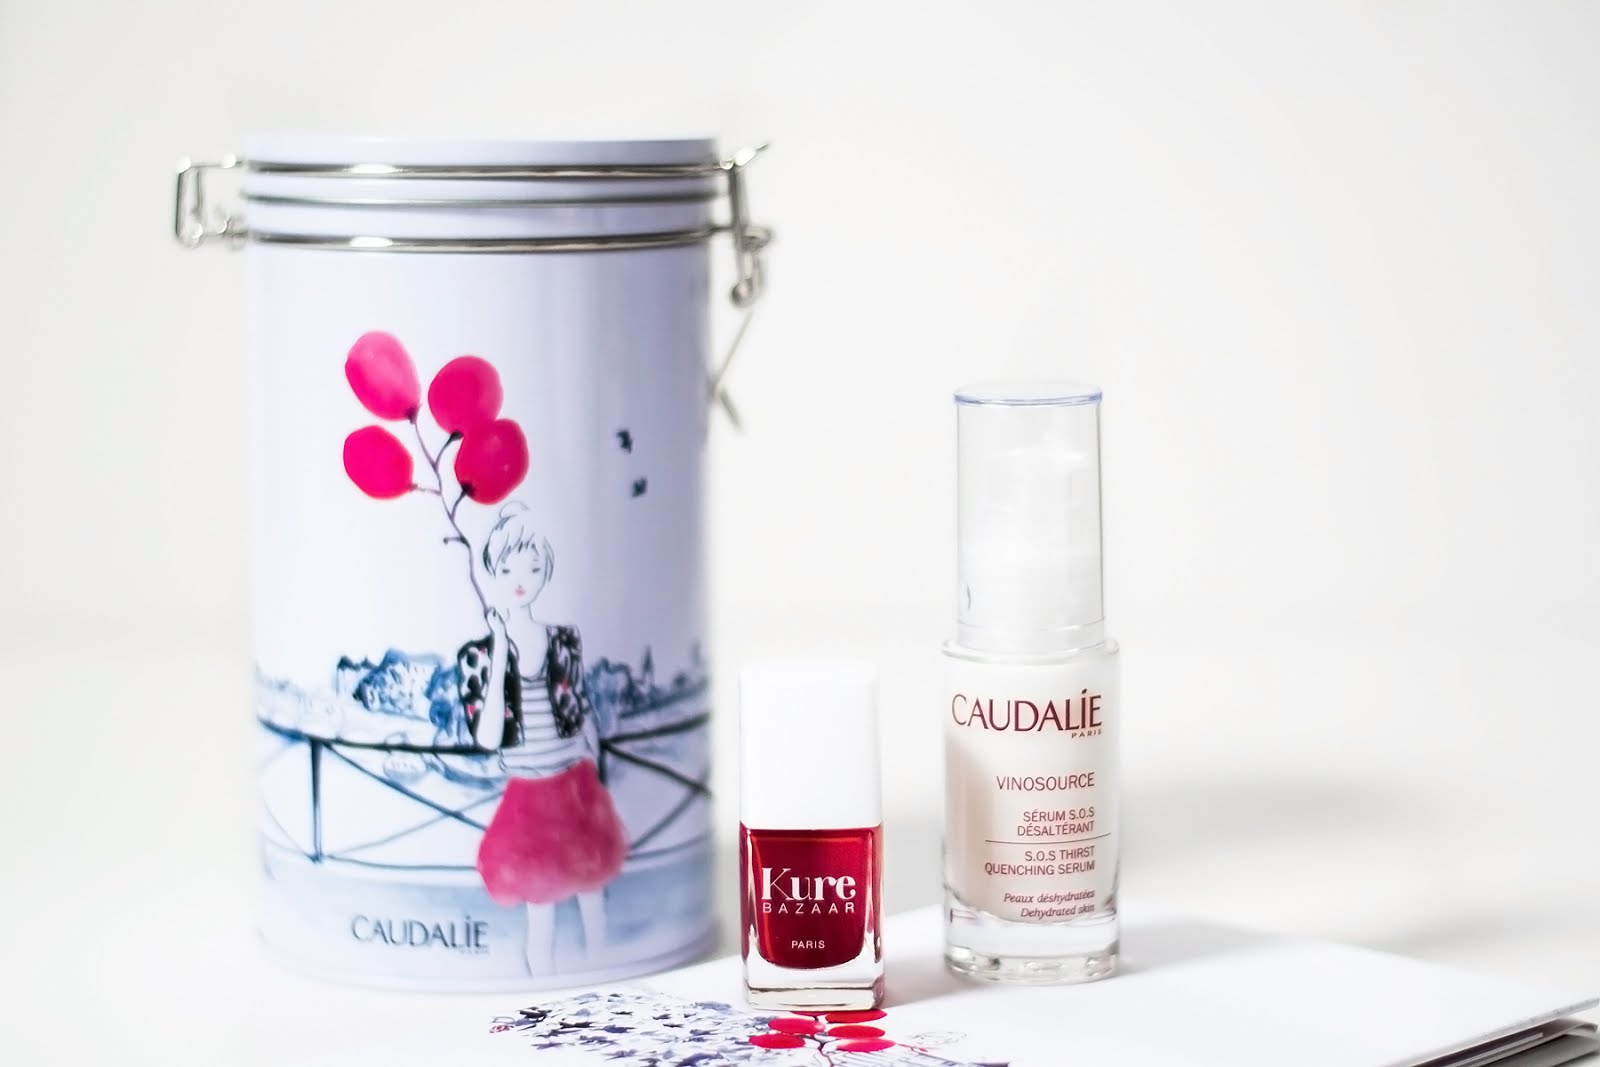 Caudalie x Kure bazaar, vinosource, sos serum, dehydratation, nailpolish, madame k, limited edition